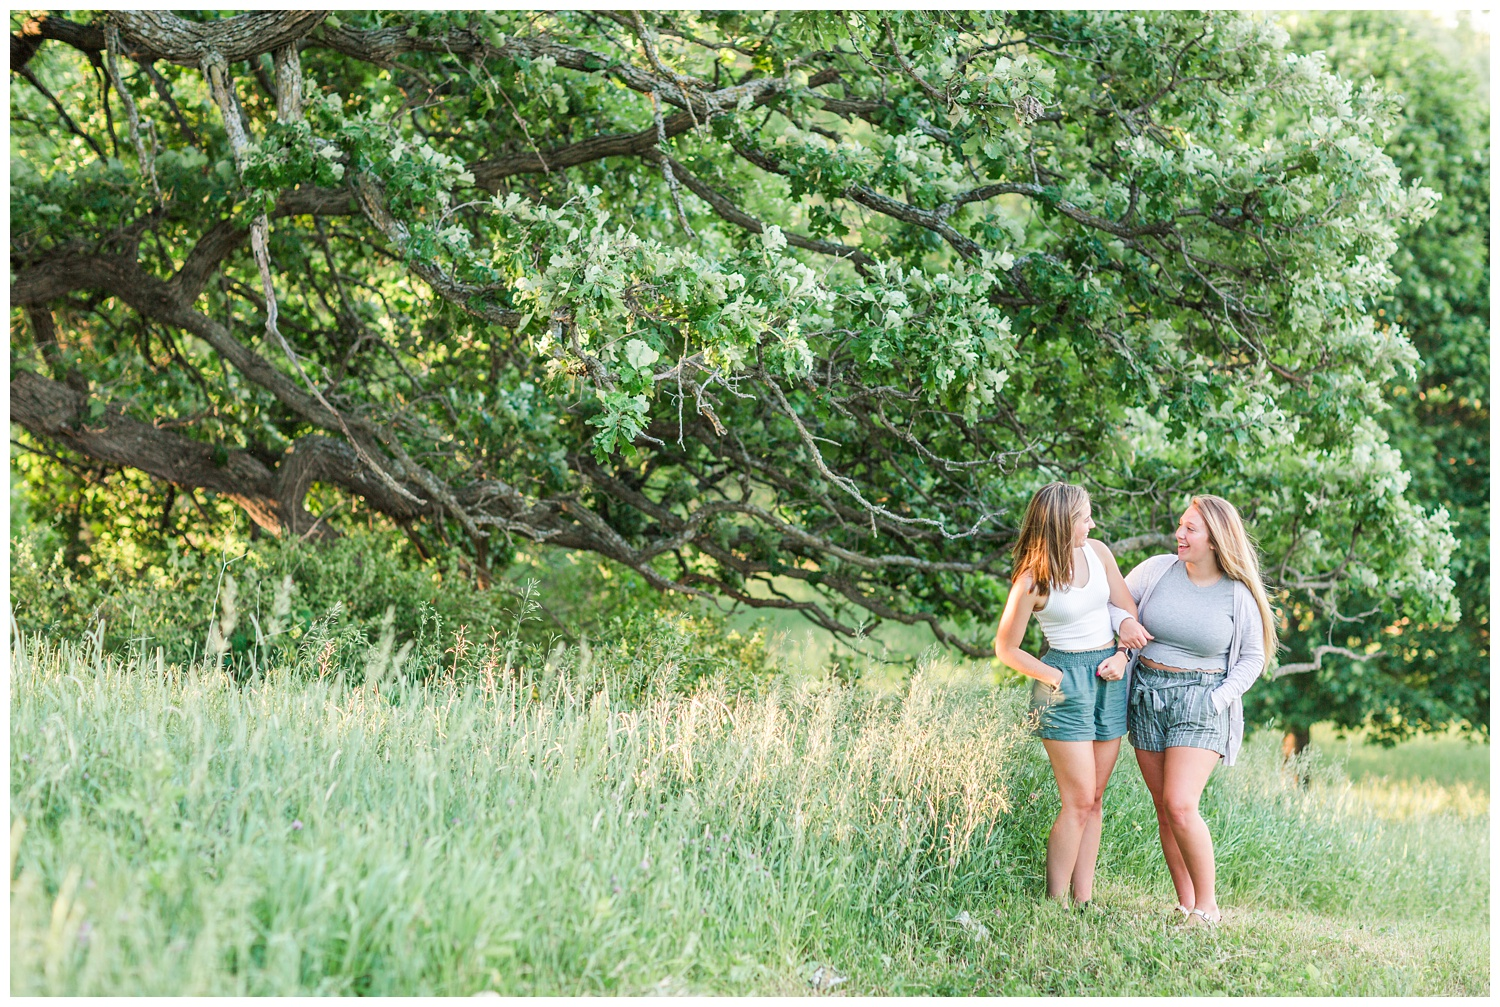 Senior girls best friends BFFs embrace laughing at each other in a grassy field on a rural Iowa farm | CB Studio